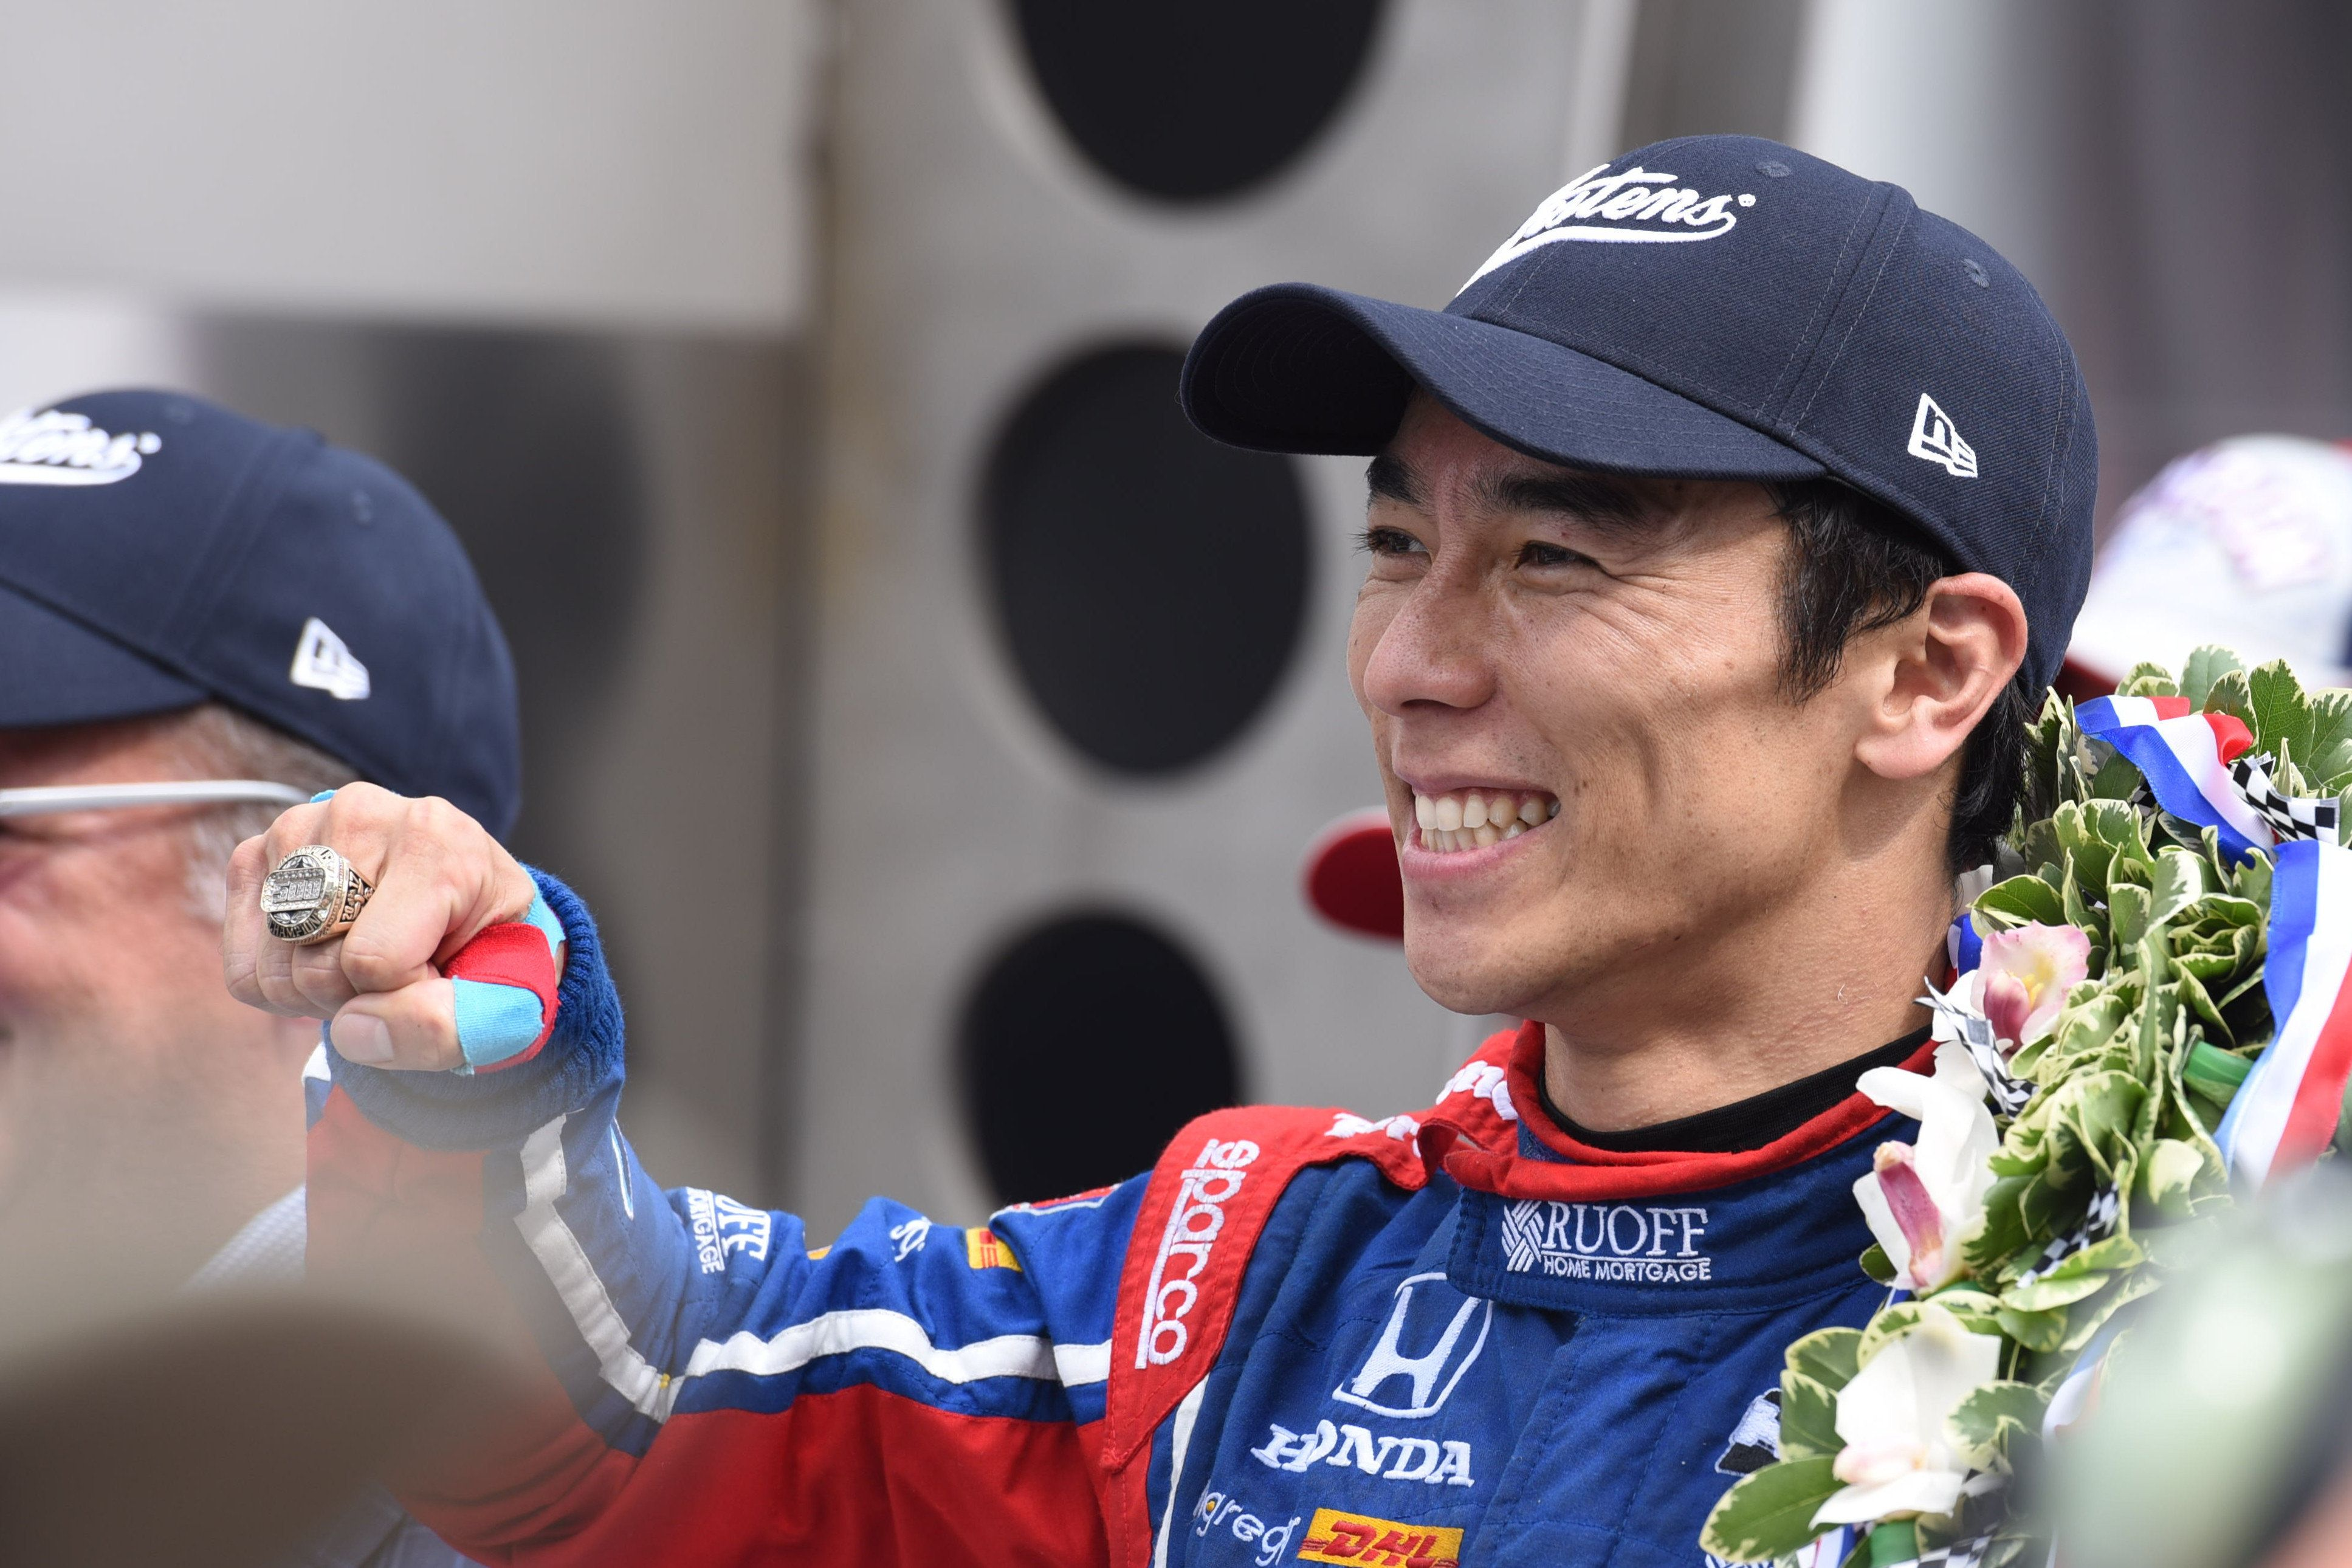 Takuma Sato's Indy 500 victory prompted a Denver sportswriter to send an insensitive tweet.